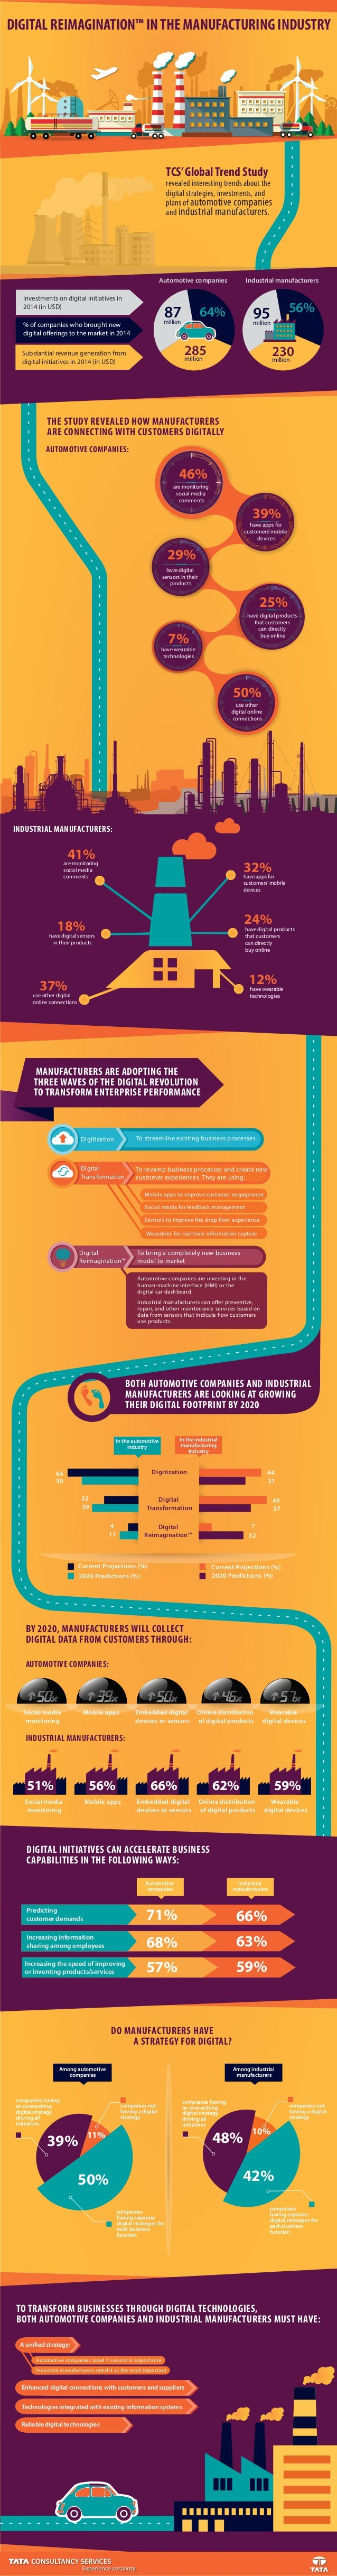 TCS'GlobalTrend Study revealed interesting trends about the digital strategies, investments, and plans of automotive compa...